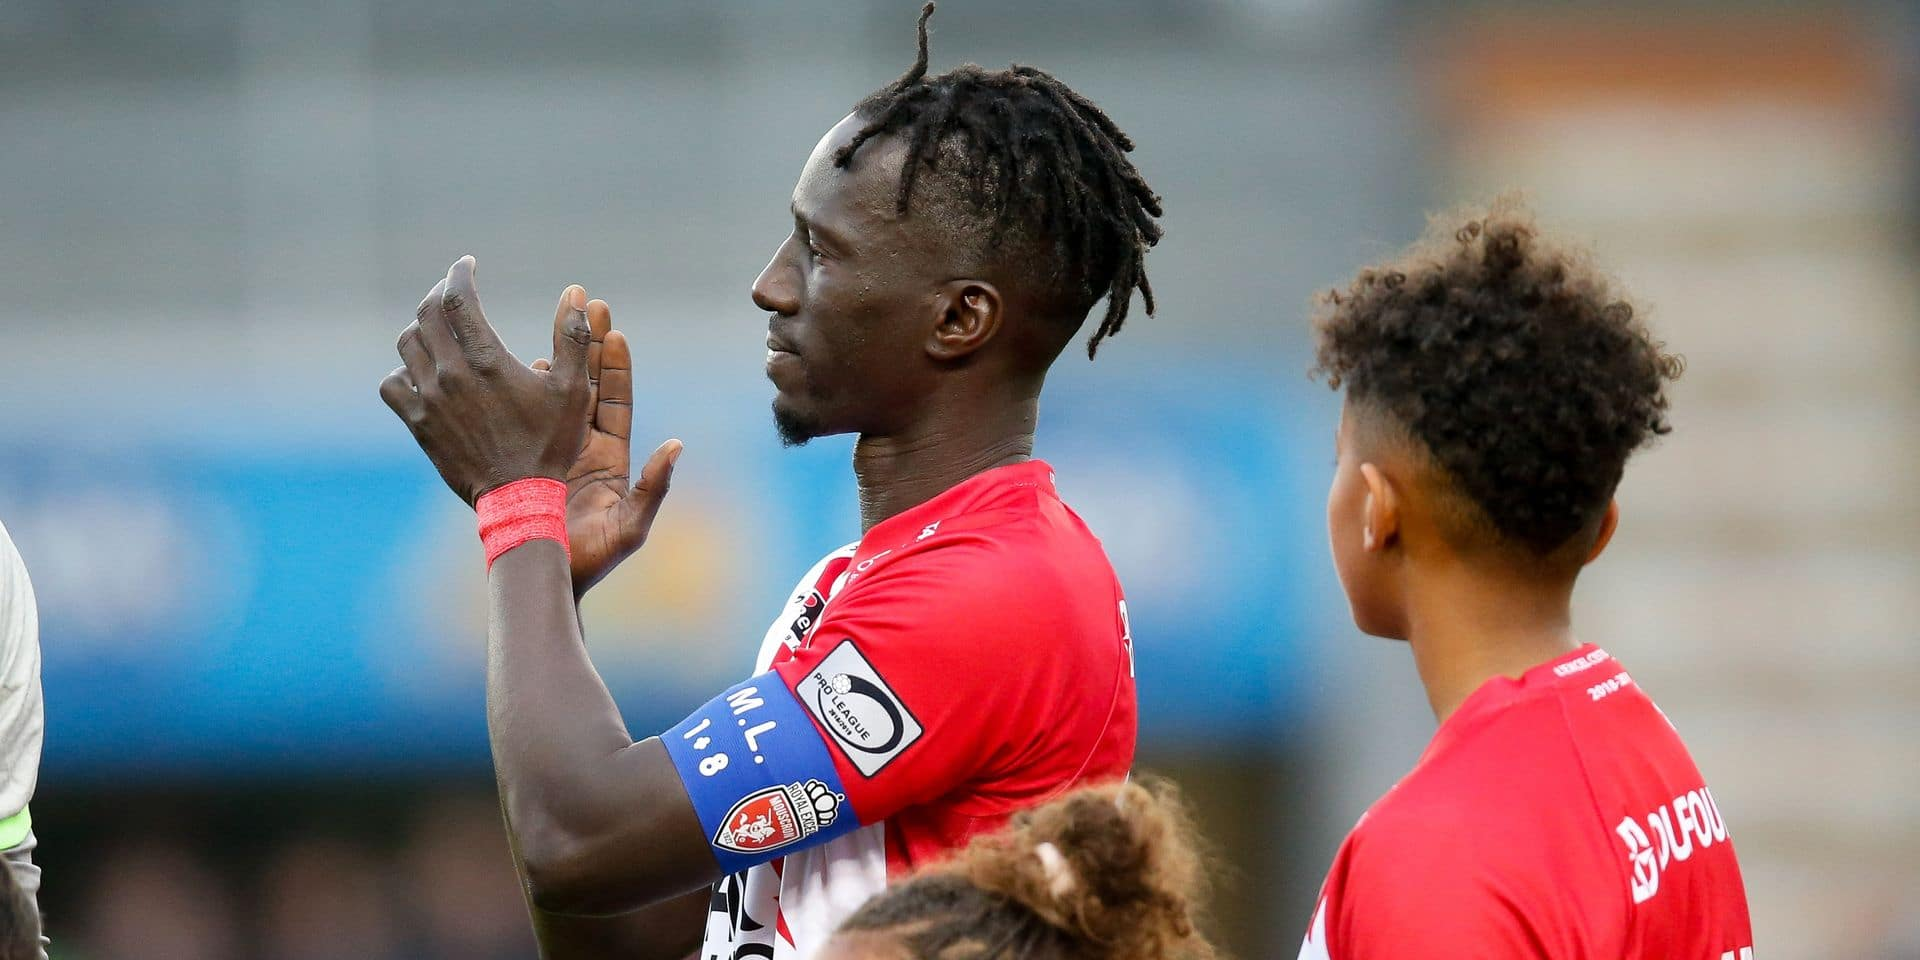 Mouscron's Mbaye Leye pictured at the start of a soccer game between Royal Excel Mouscron and Waasland-Beveren, Friday 17 May 2019 in Mouscron, on the tenth and last day of the Play-off 2B of the 'Jupiler Pro League' Belgian soccer championship. BELGA PHOTO BRUNO FAHY